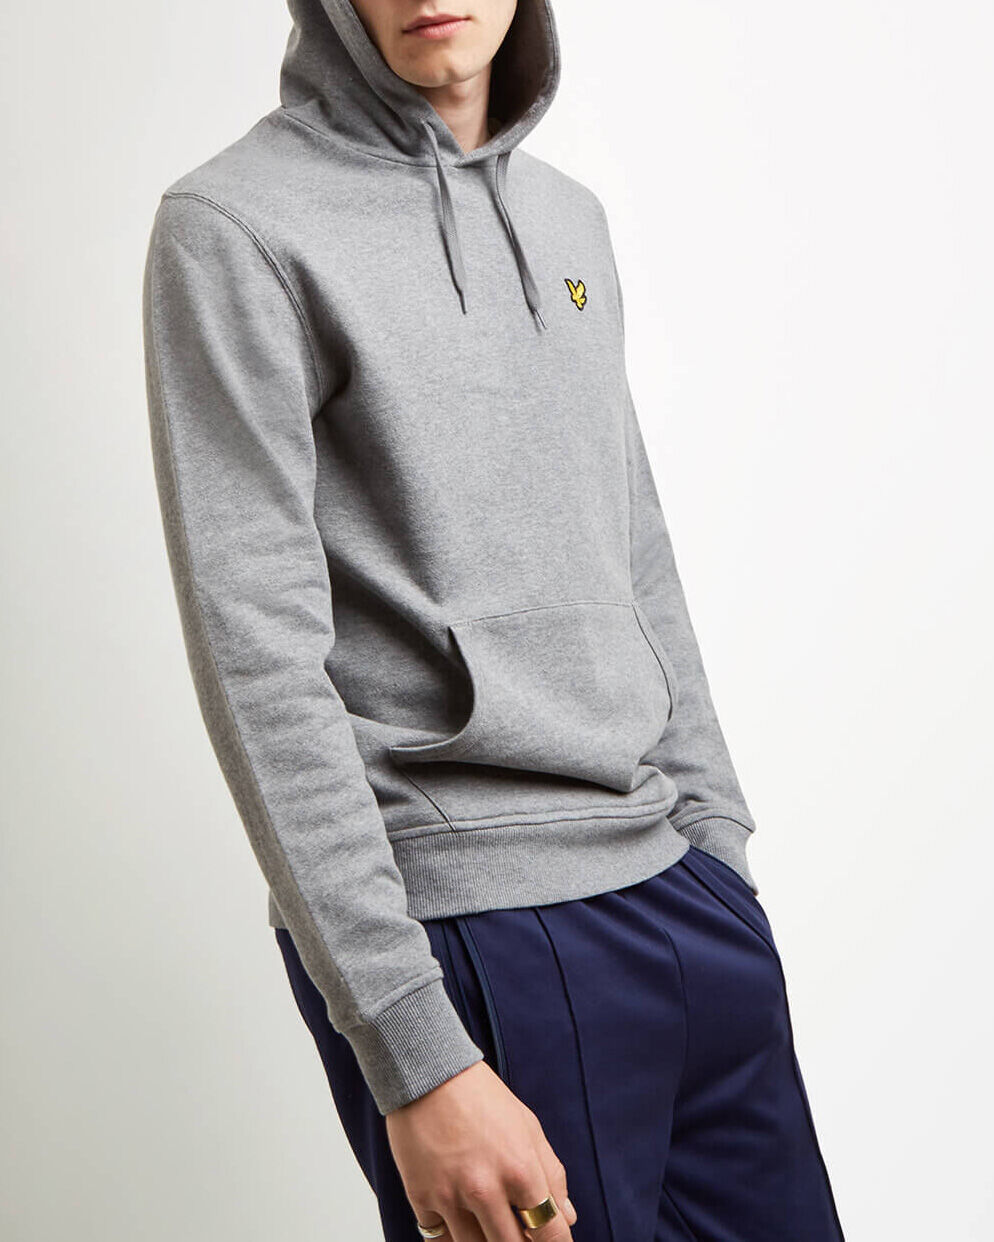 Lyle-and-Scott-Mens-Pullover-Hoodie-Cotton thumbnail 36